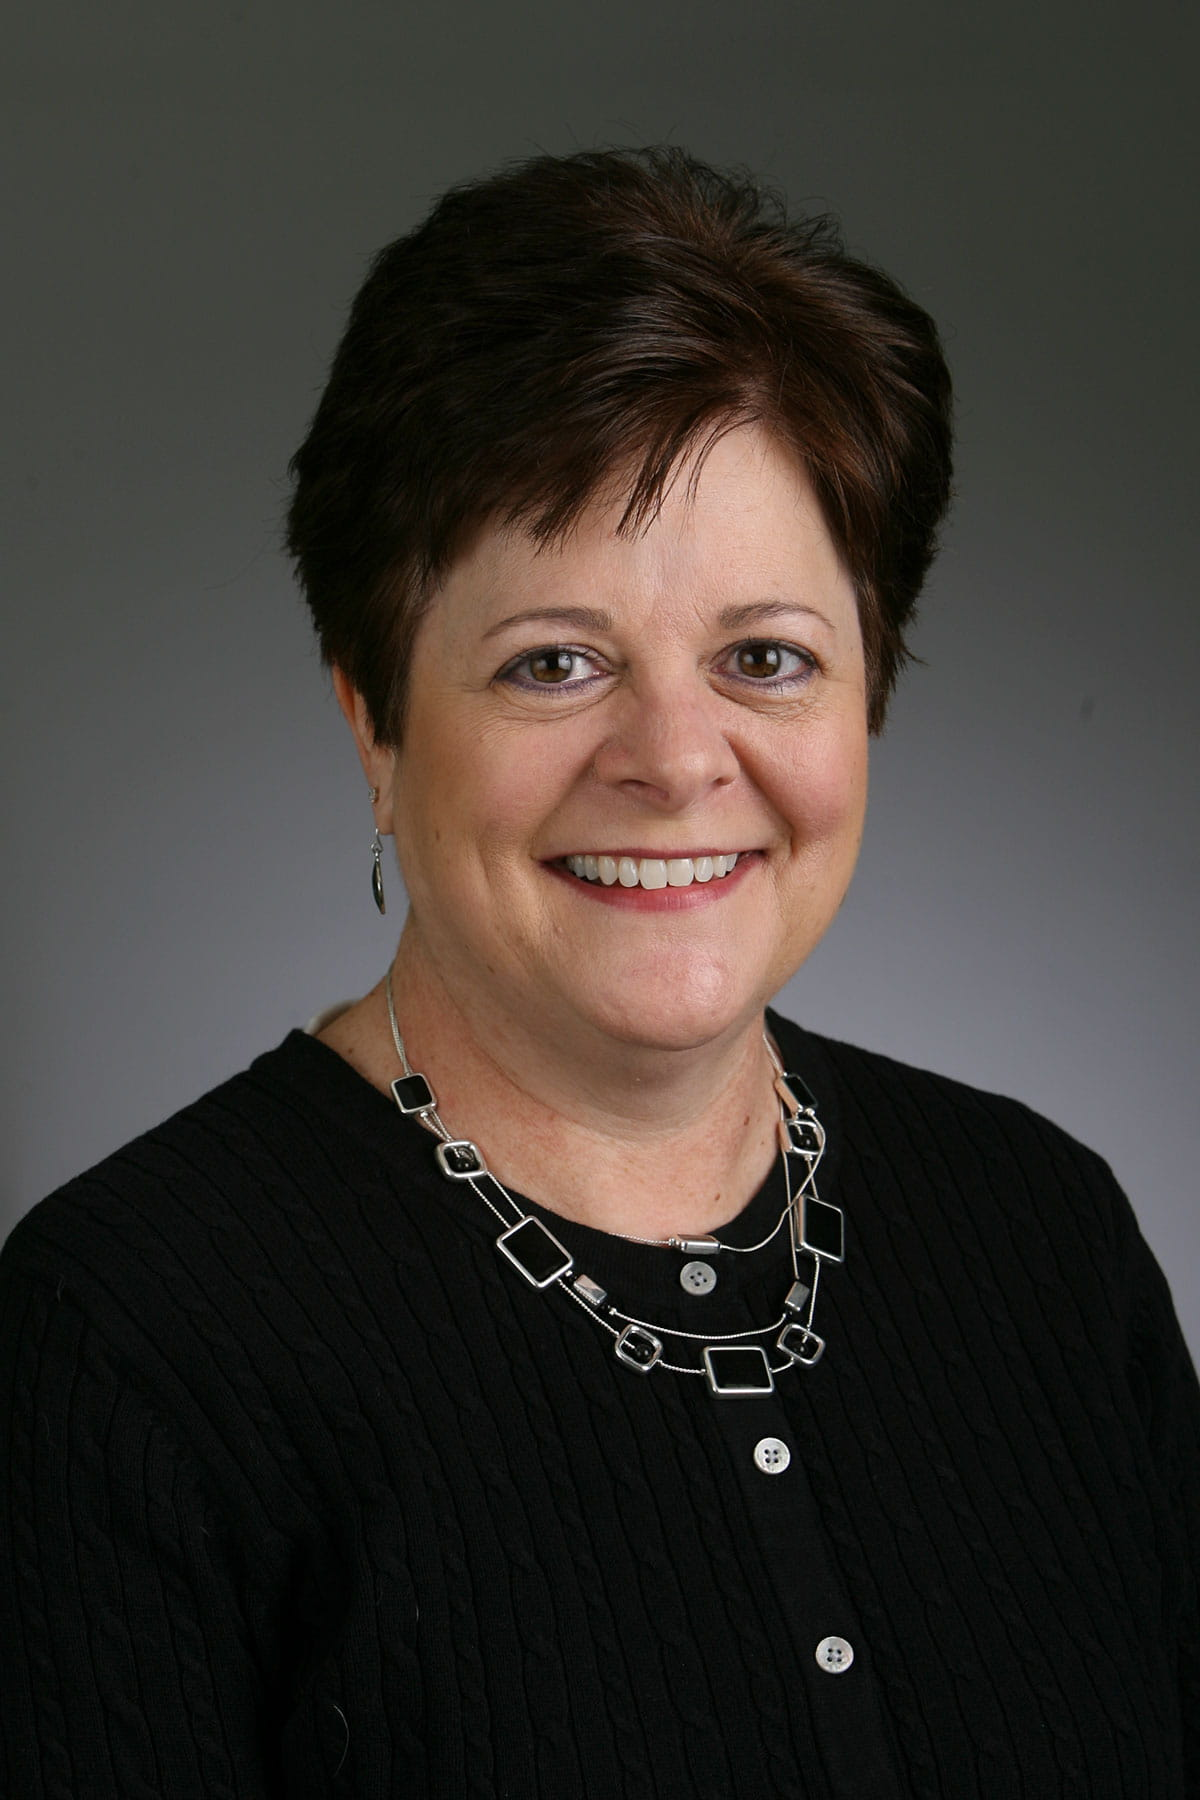 A photo of Karen Padgett.